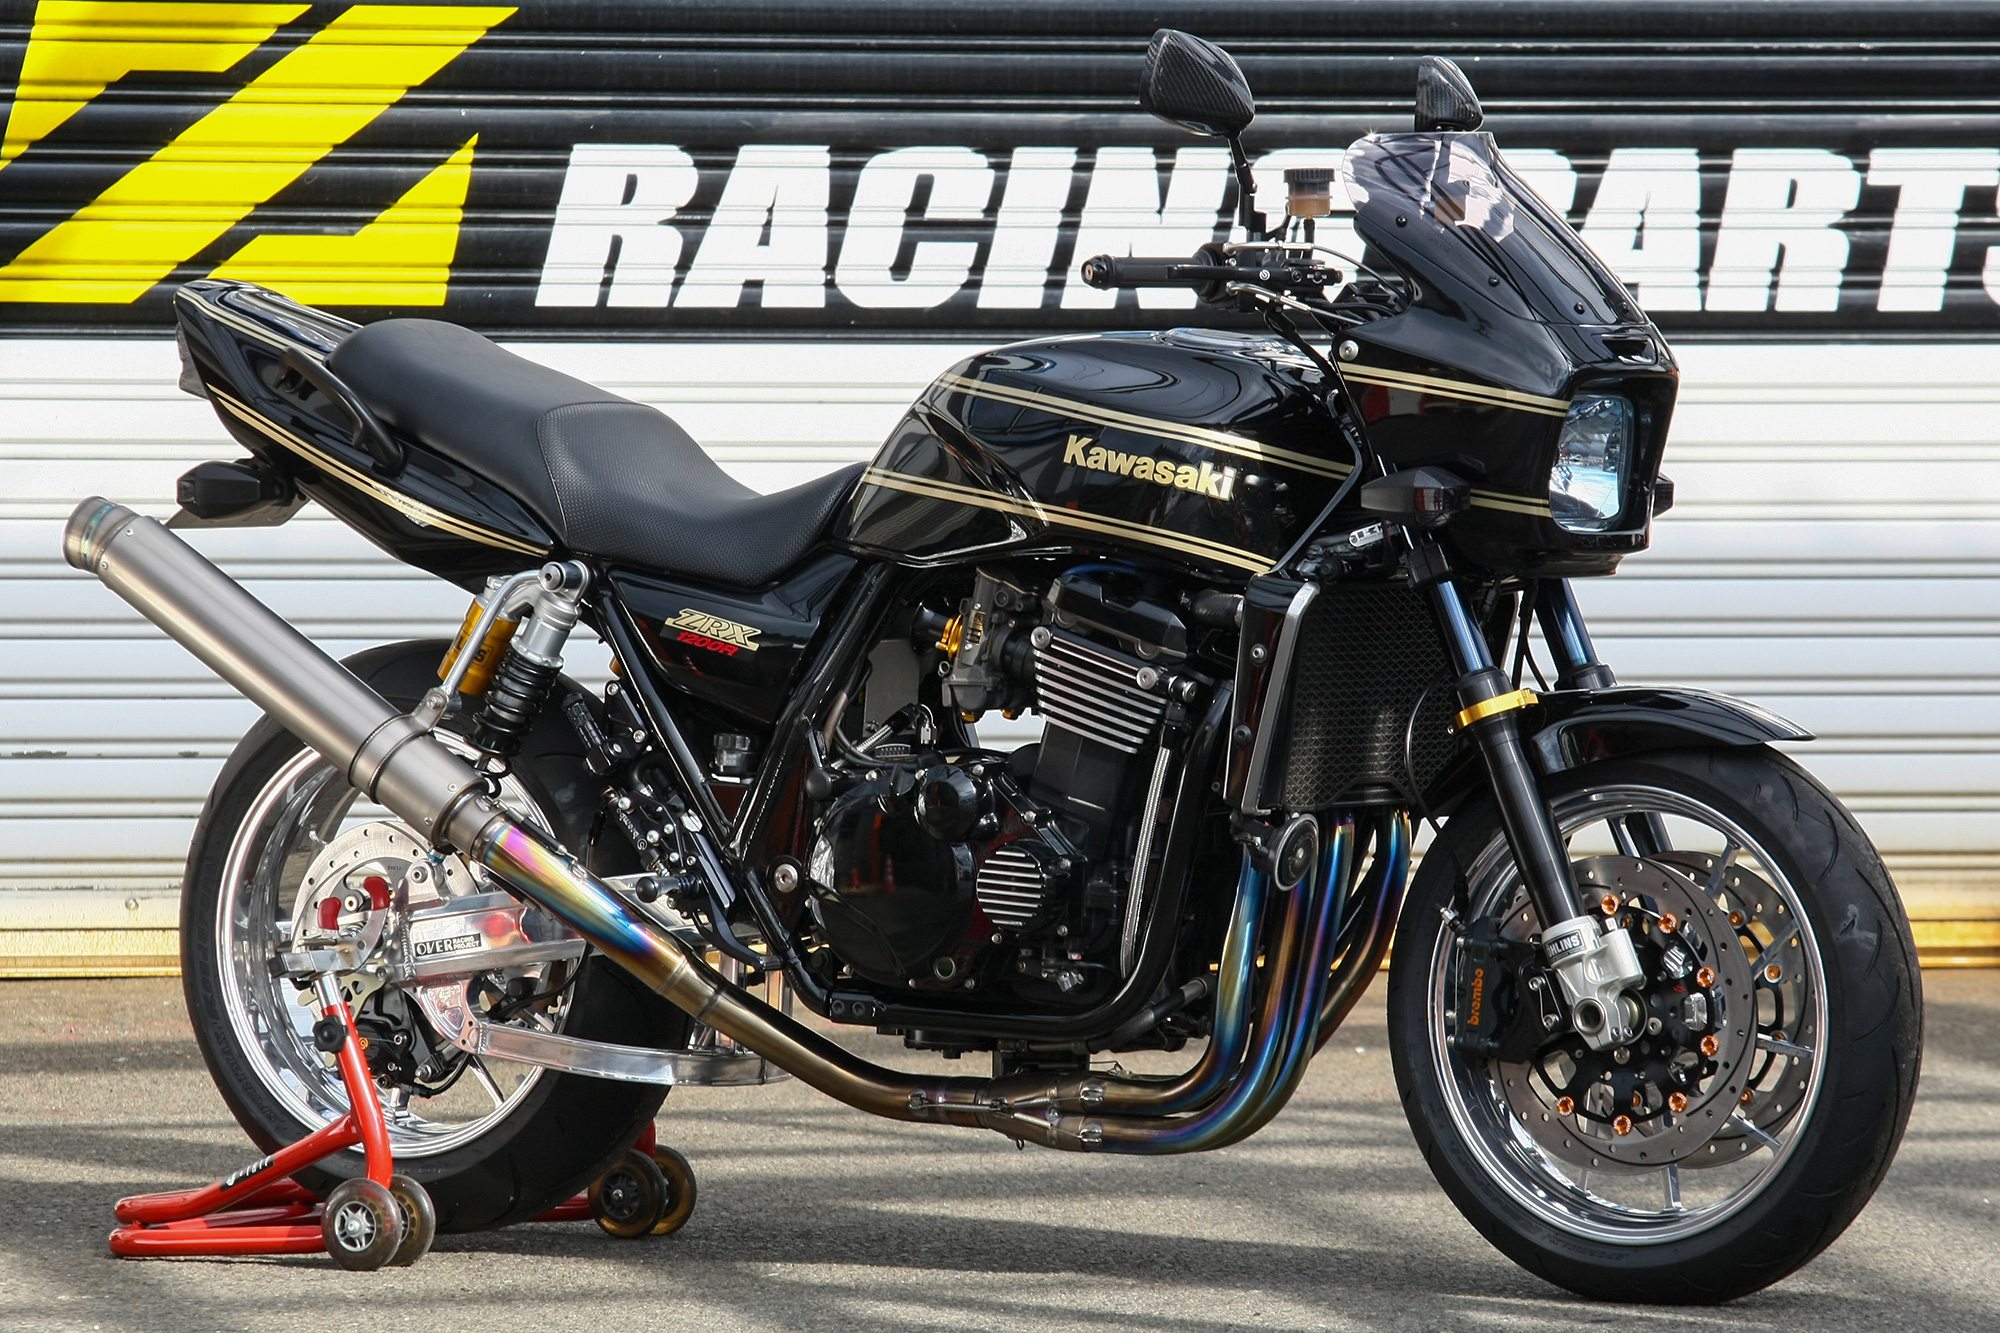 ZRX1200R by Zレーシングパーツ